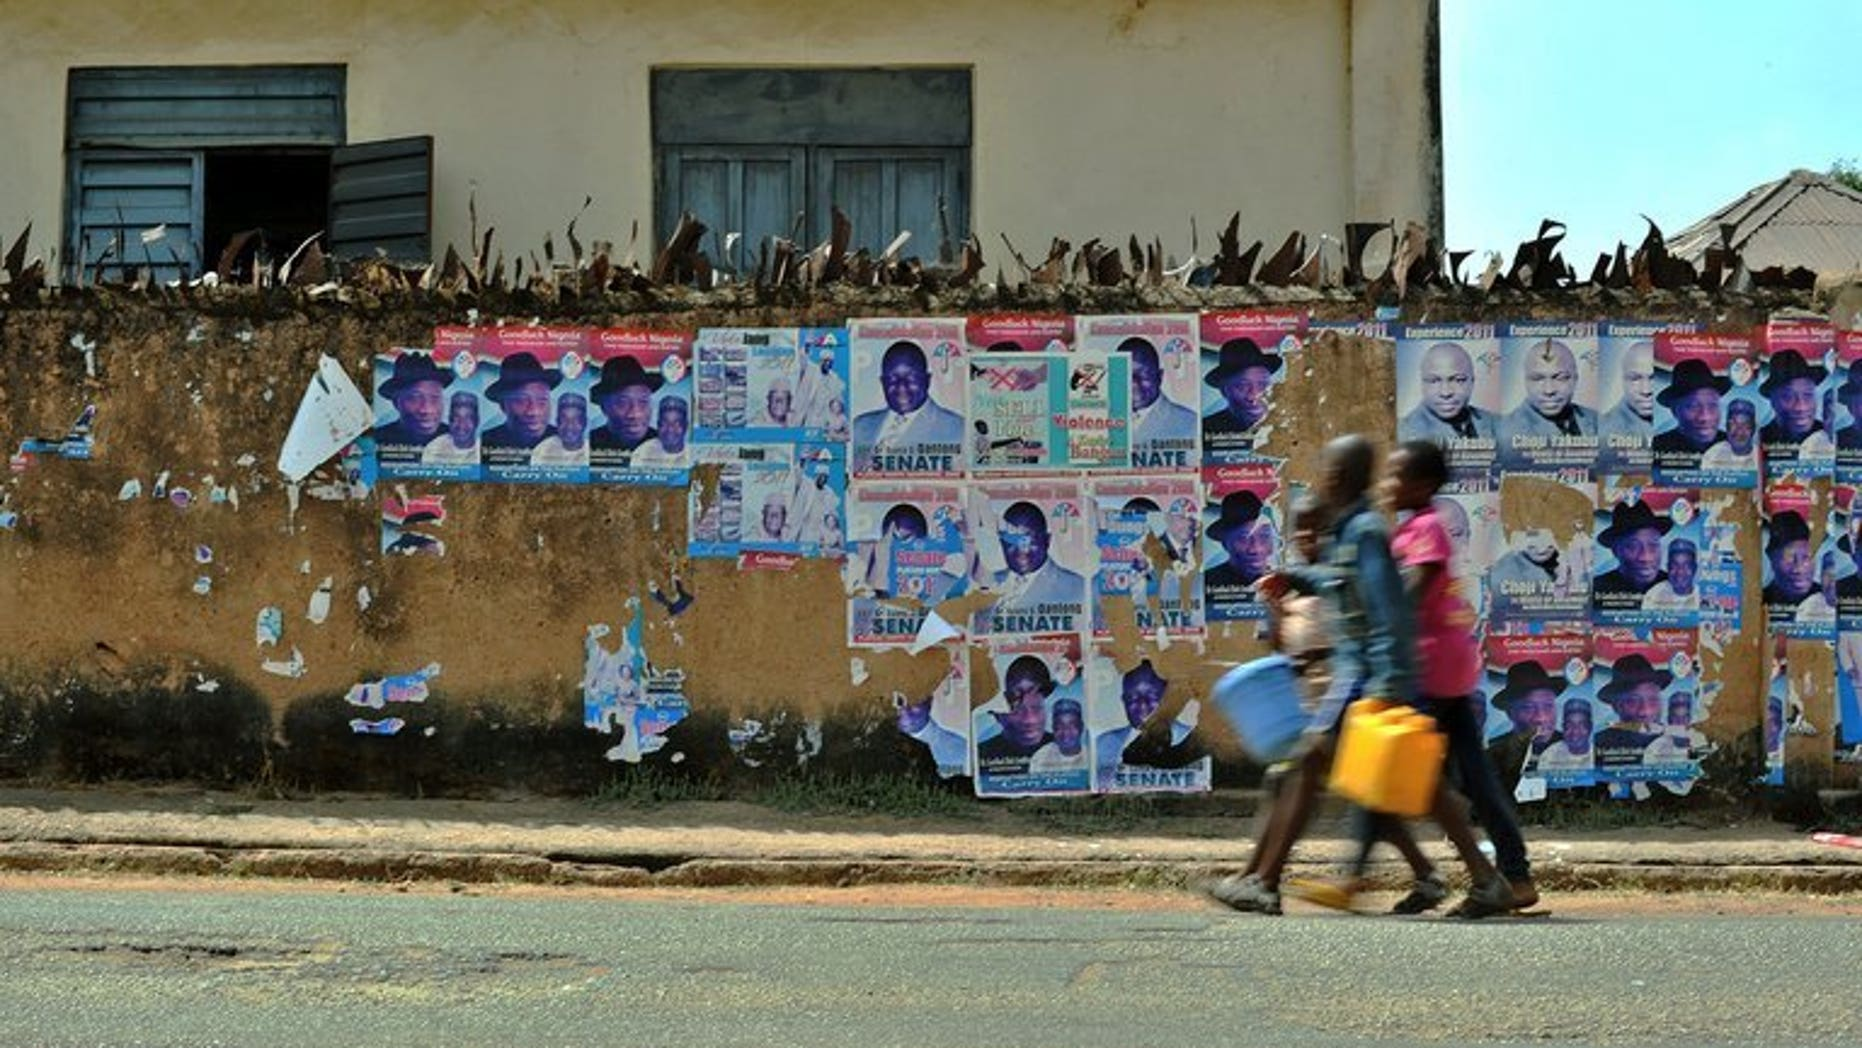 Boys walk along a street in Jos, the administrative capital of Plateau state, in Nigeria's Middle Belt region between the mainly Muslim north and predominately Christian south on April 15, 2011. A military commander claimed on Wednesday that soldiers had since last week killed more than 100 attackers responsible for a deadly raid in ethnically divided central Nigeria.